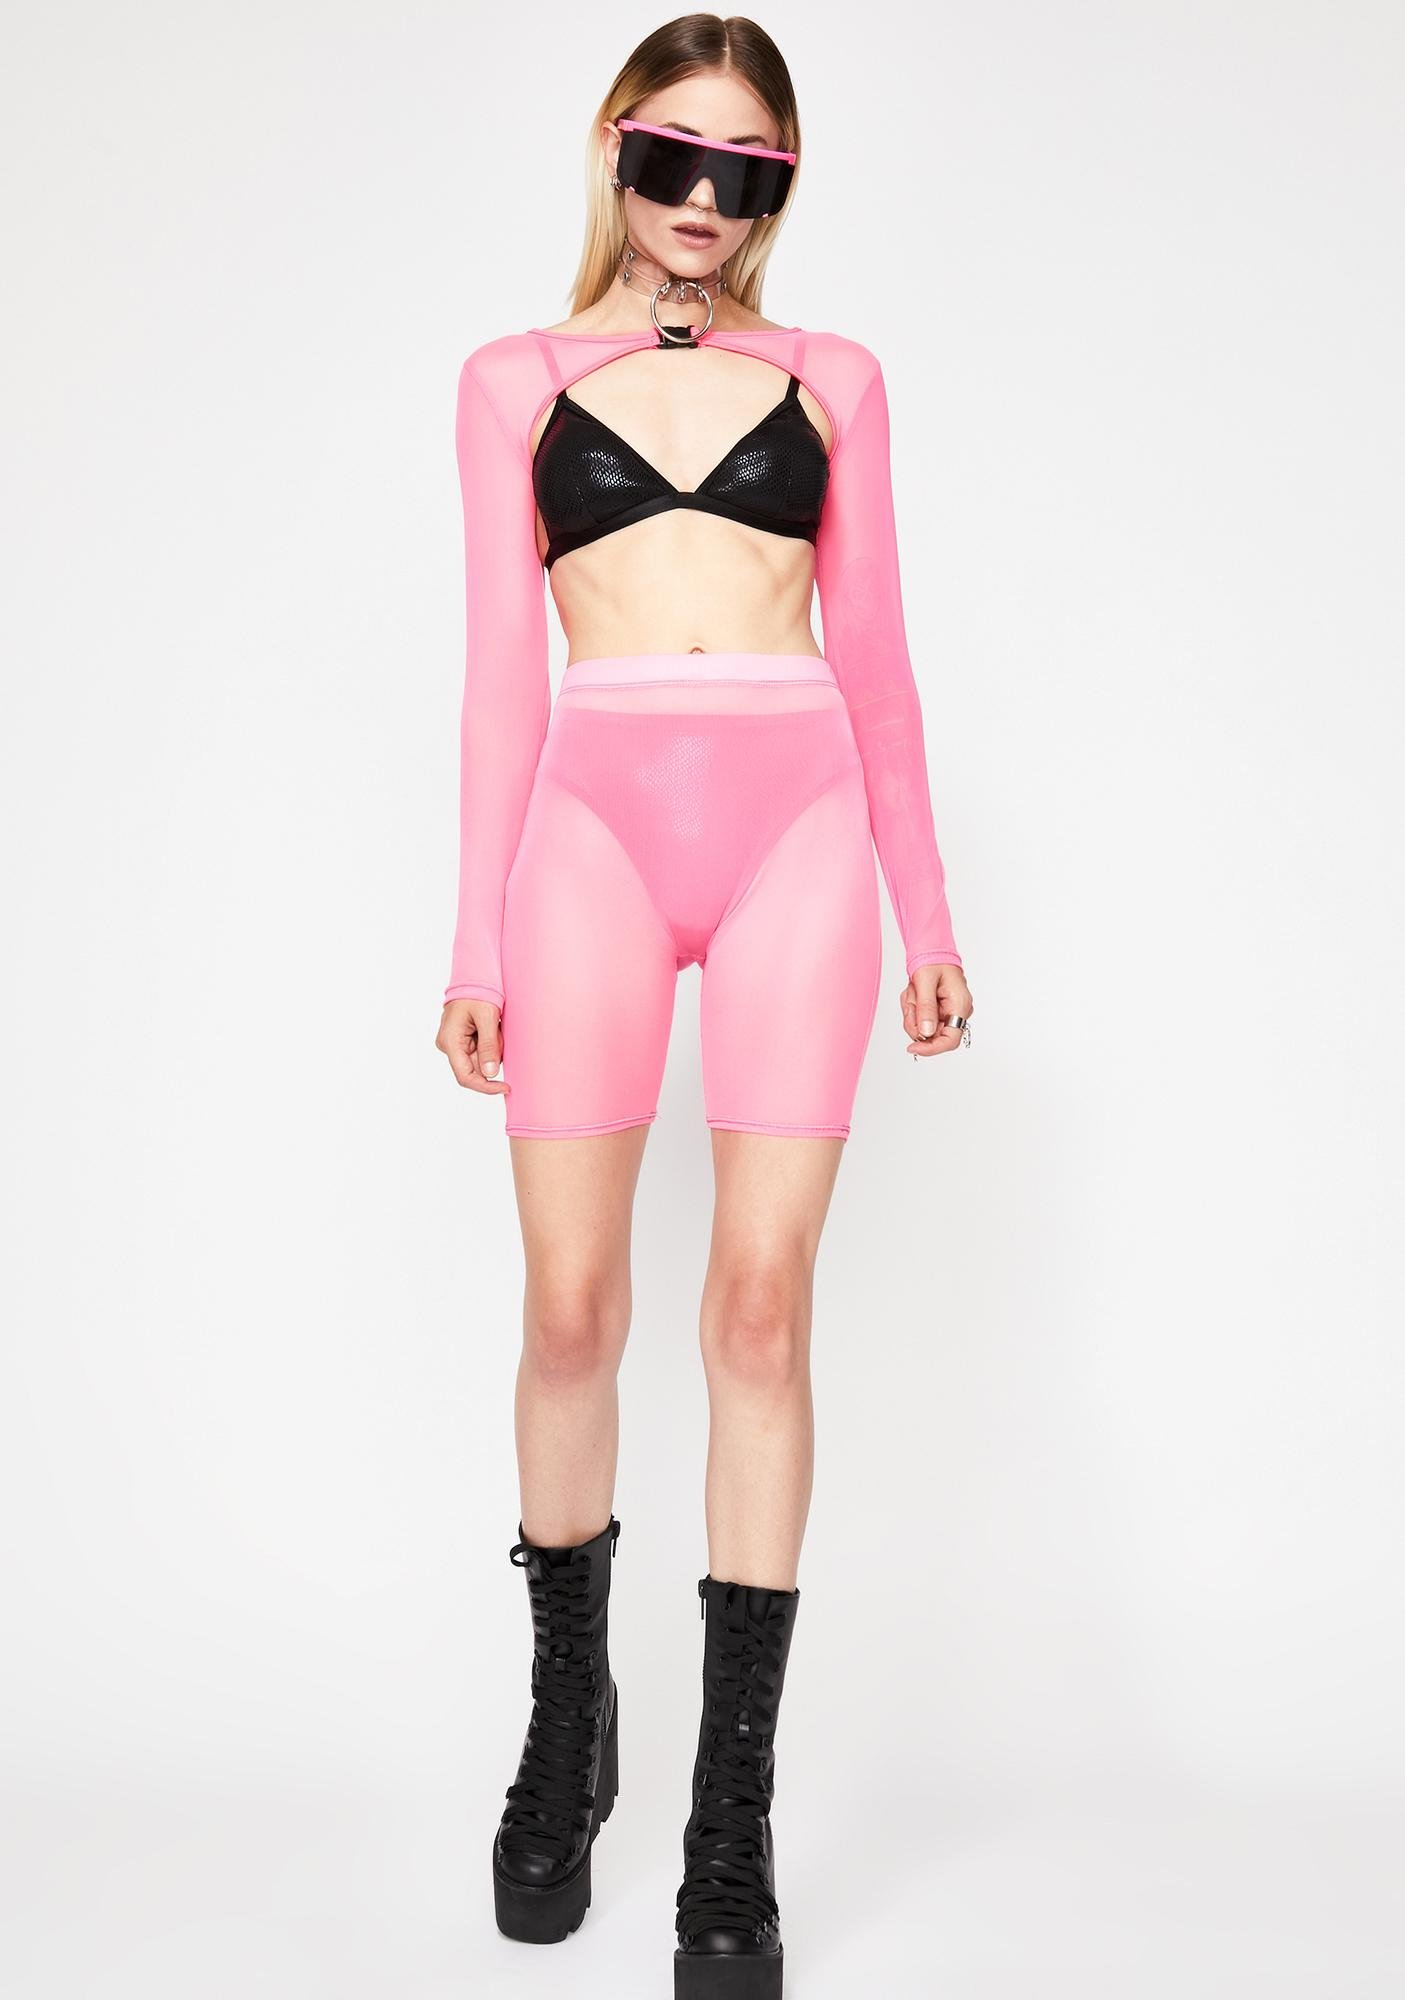 Bubblegum Trippy Delirium Sheer Set